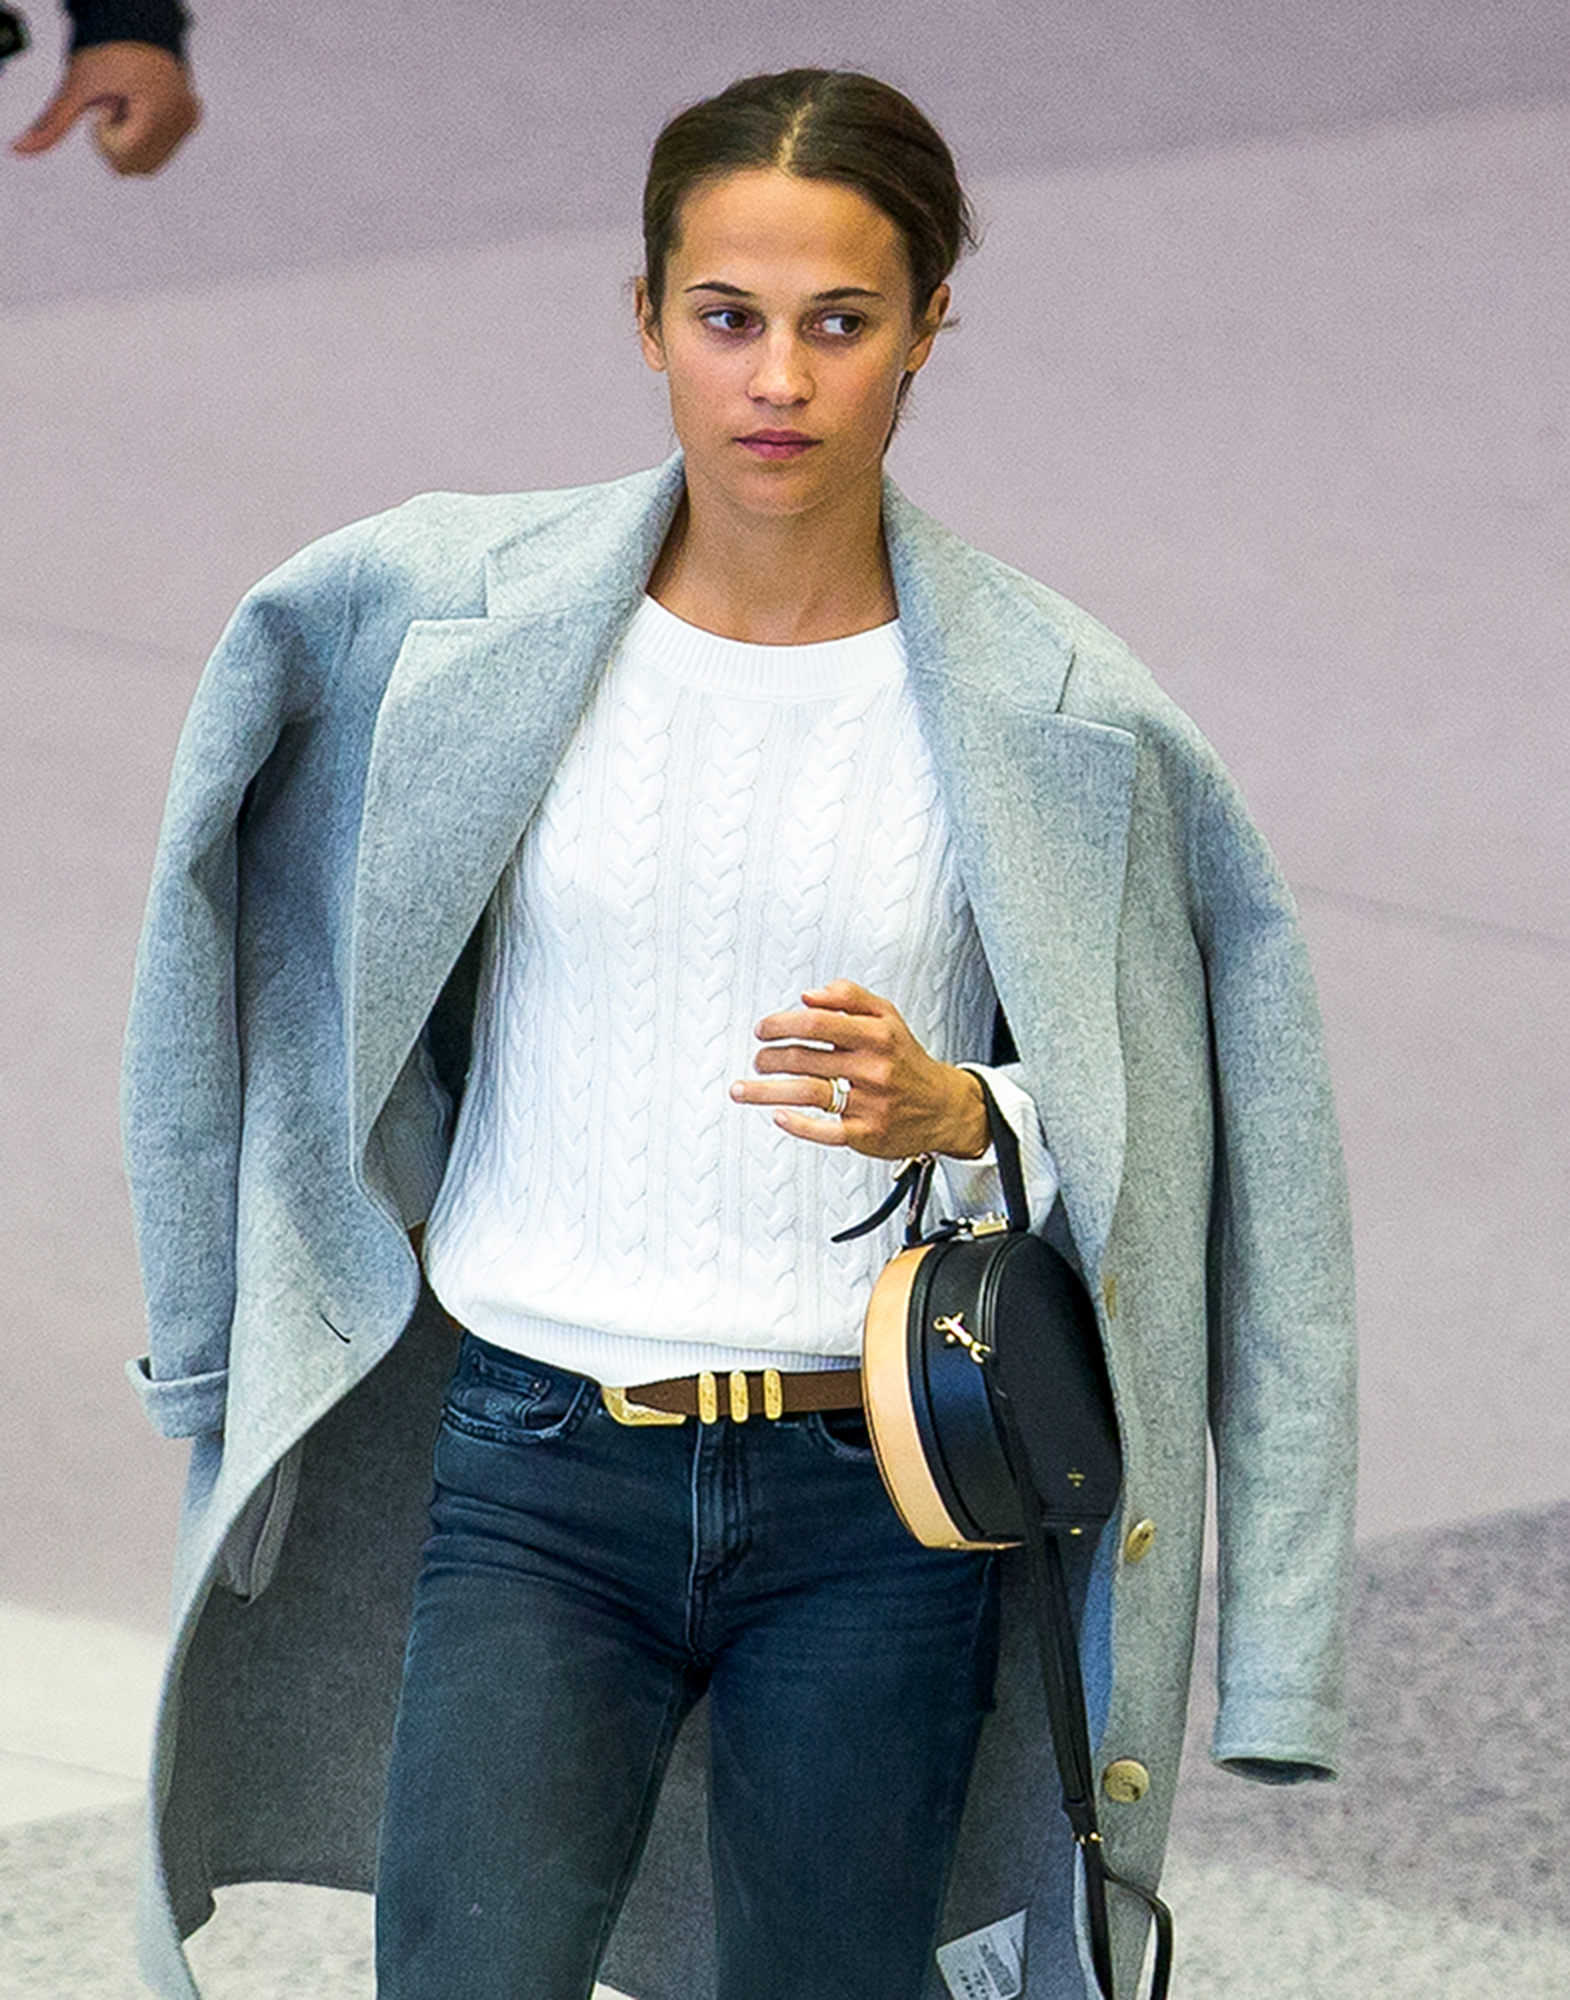 EXCLUSIVE: Newlywed Alicia Vikander shows off her wedding ring as she arrives in Miami without husband Michael Fassbender.